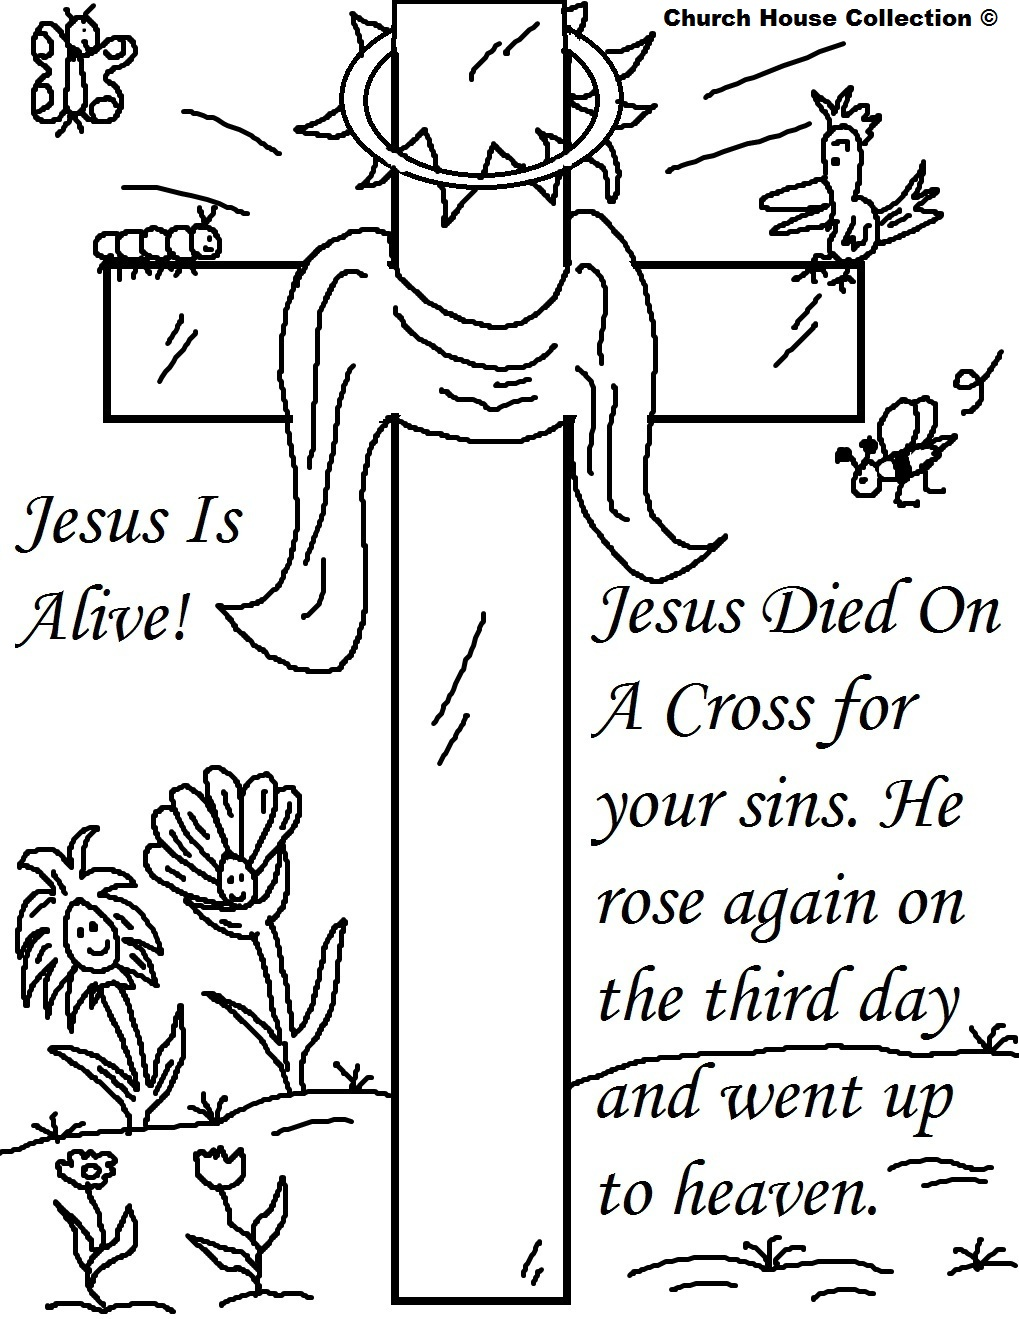 Easter Coloring Pages Simple 25 Religious Easter Coloring Pages  Free Easter Activity Printables